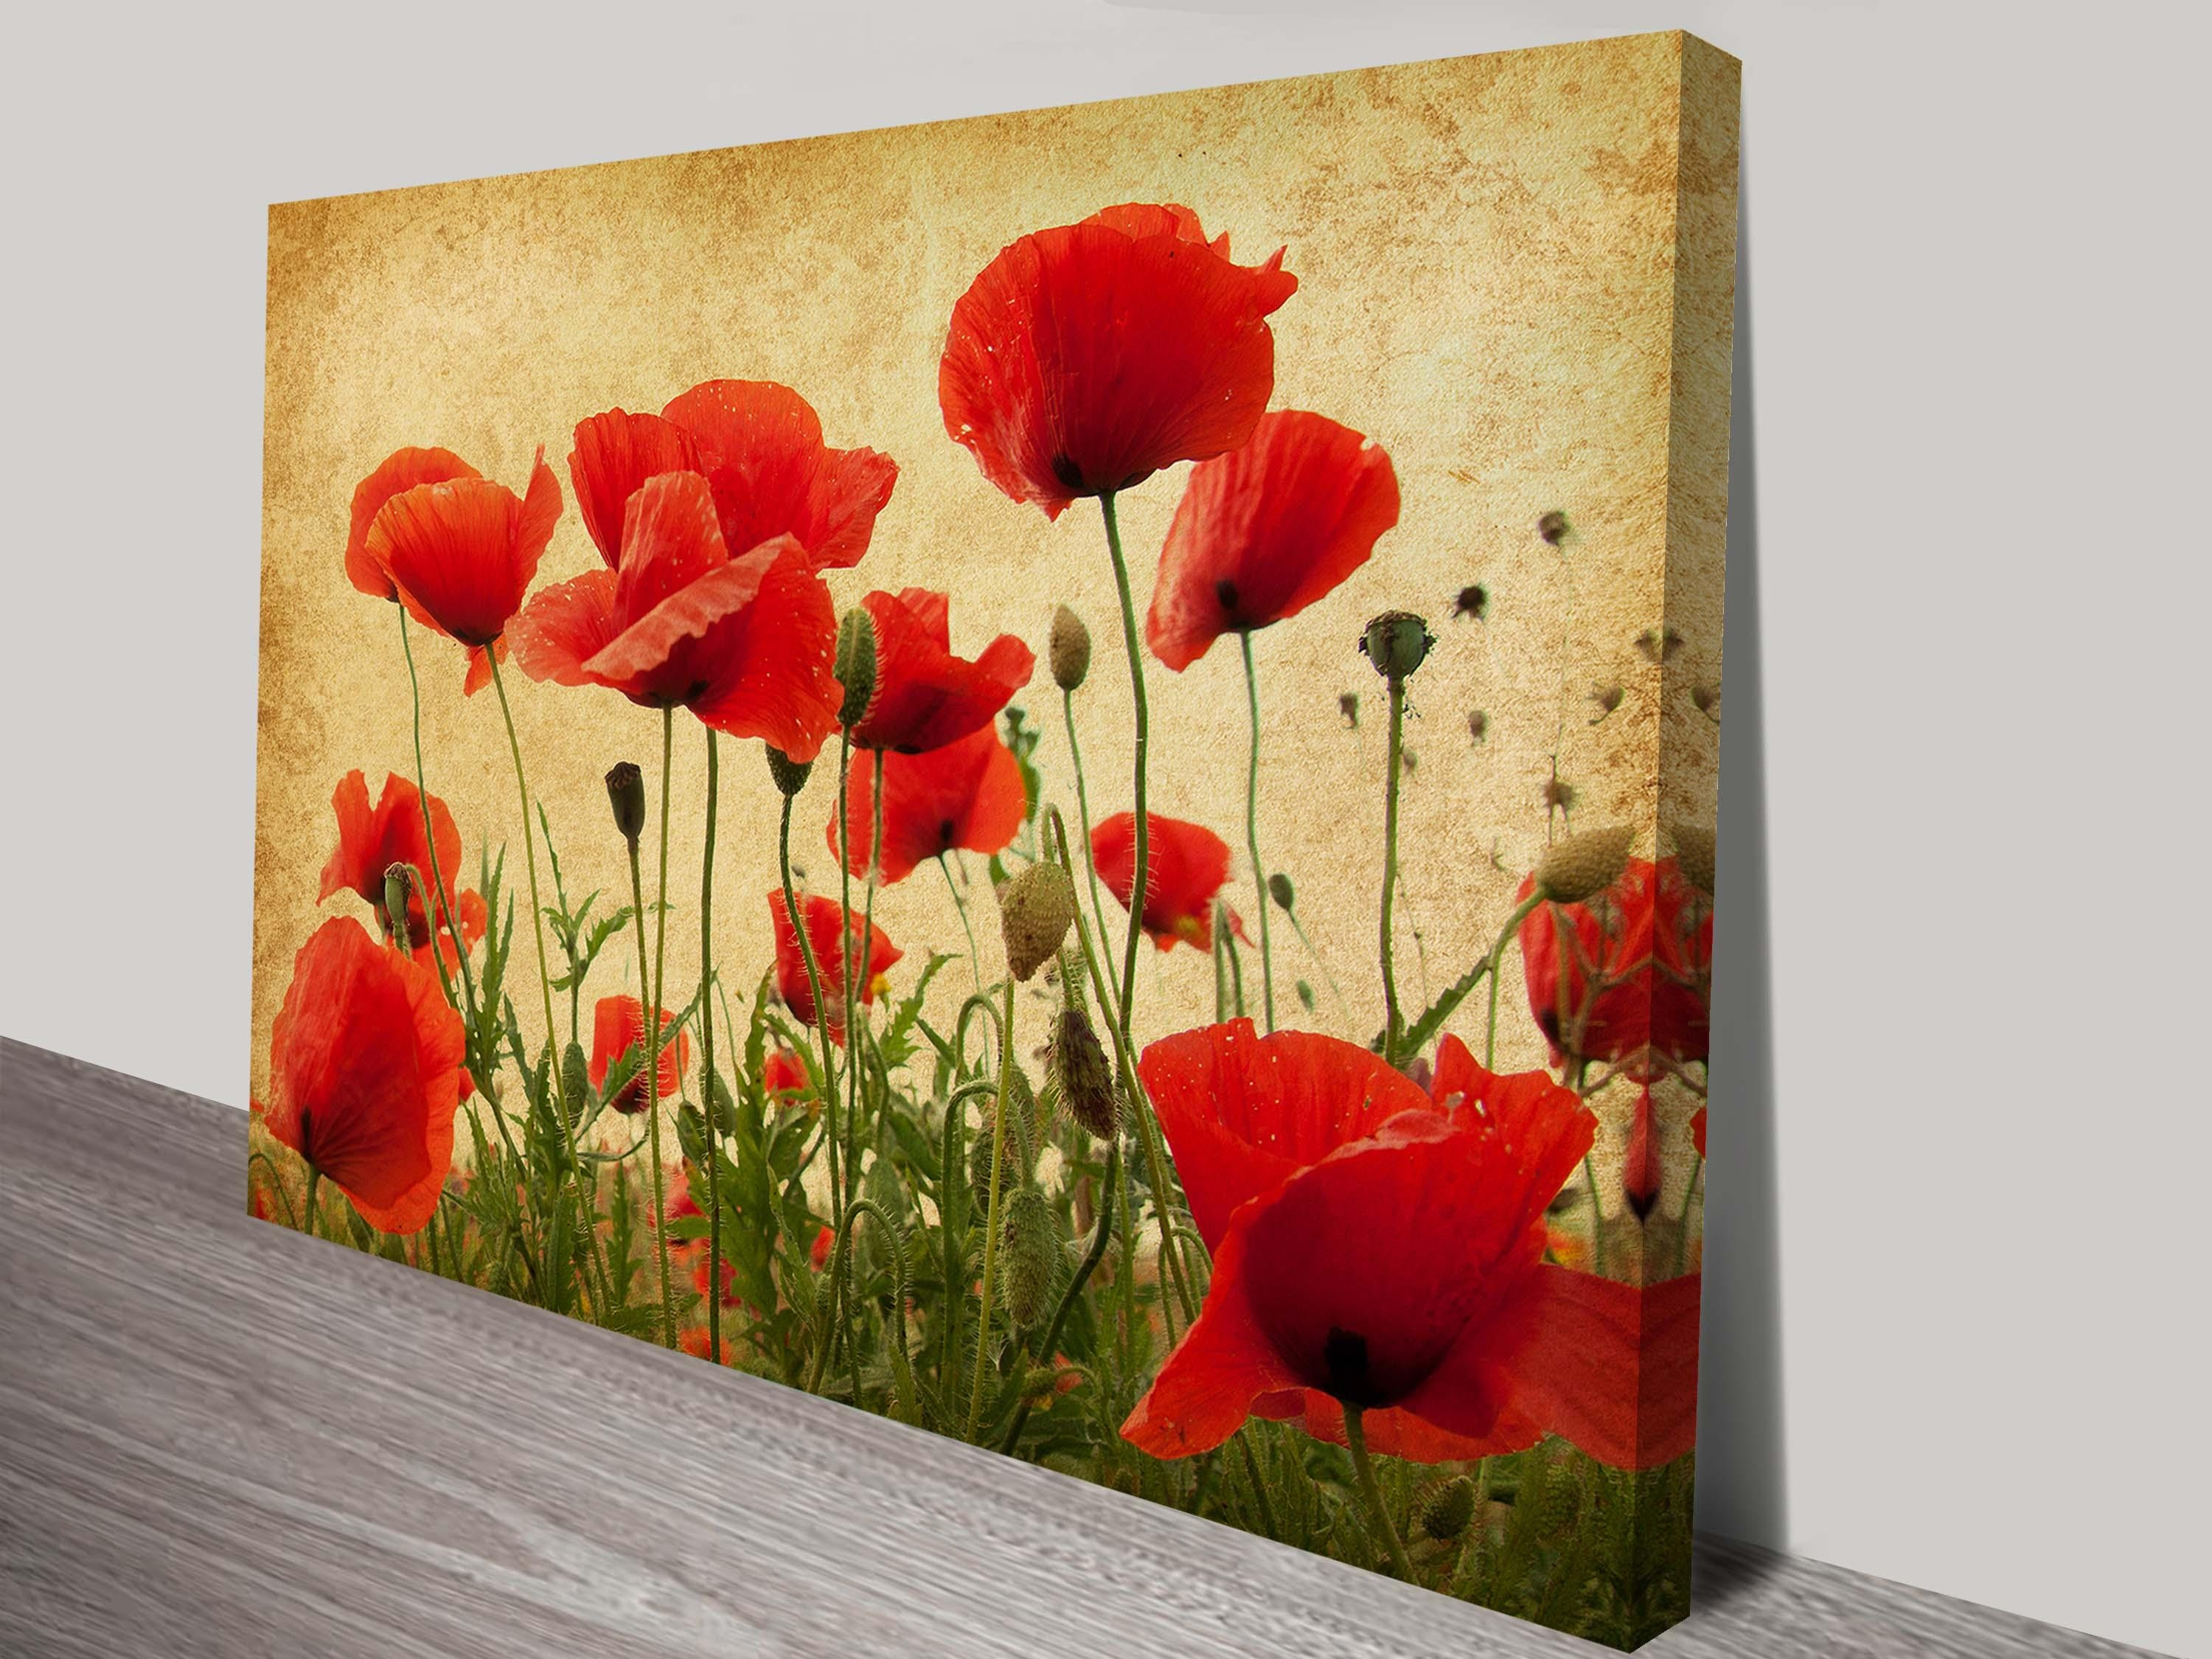 Vintage Poppies Flower Art | Canvas Prints Melbourne Pertaining To Metal Poppy Wall Art (View 7 of 20)